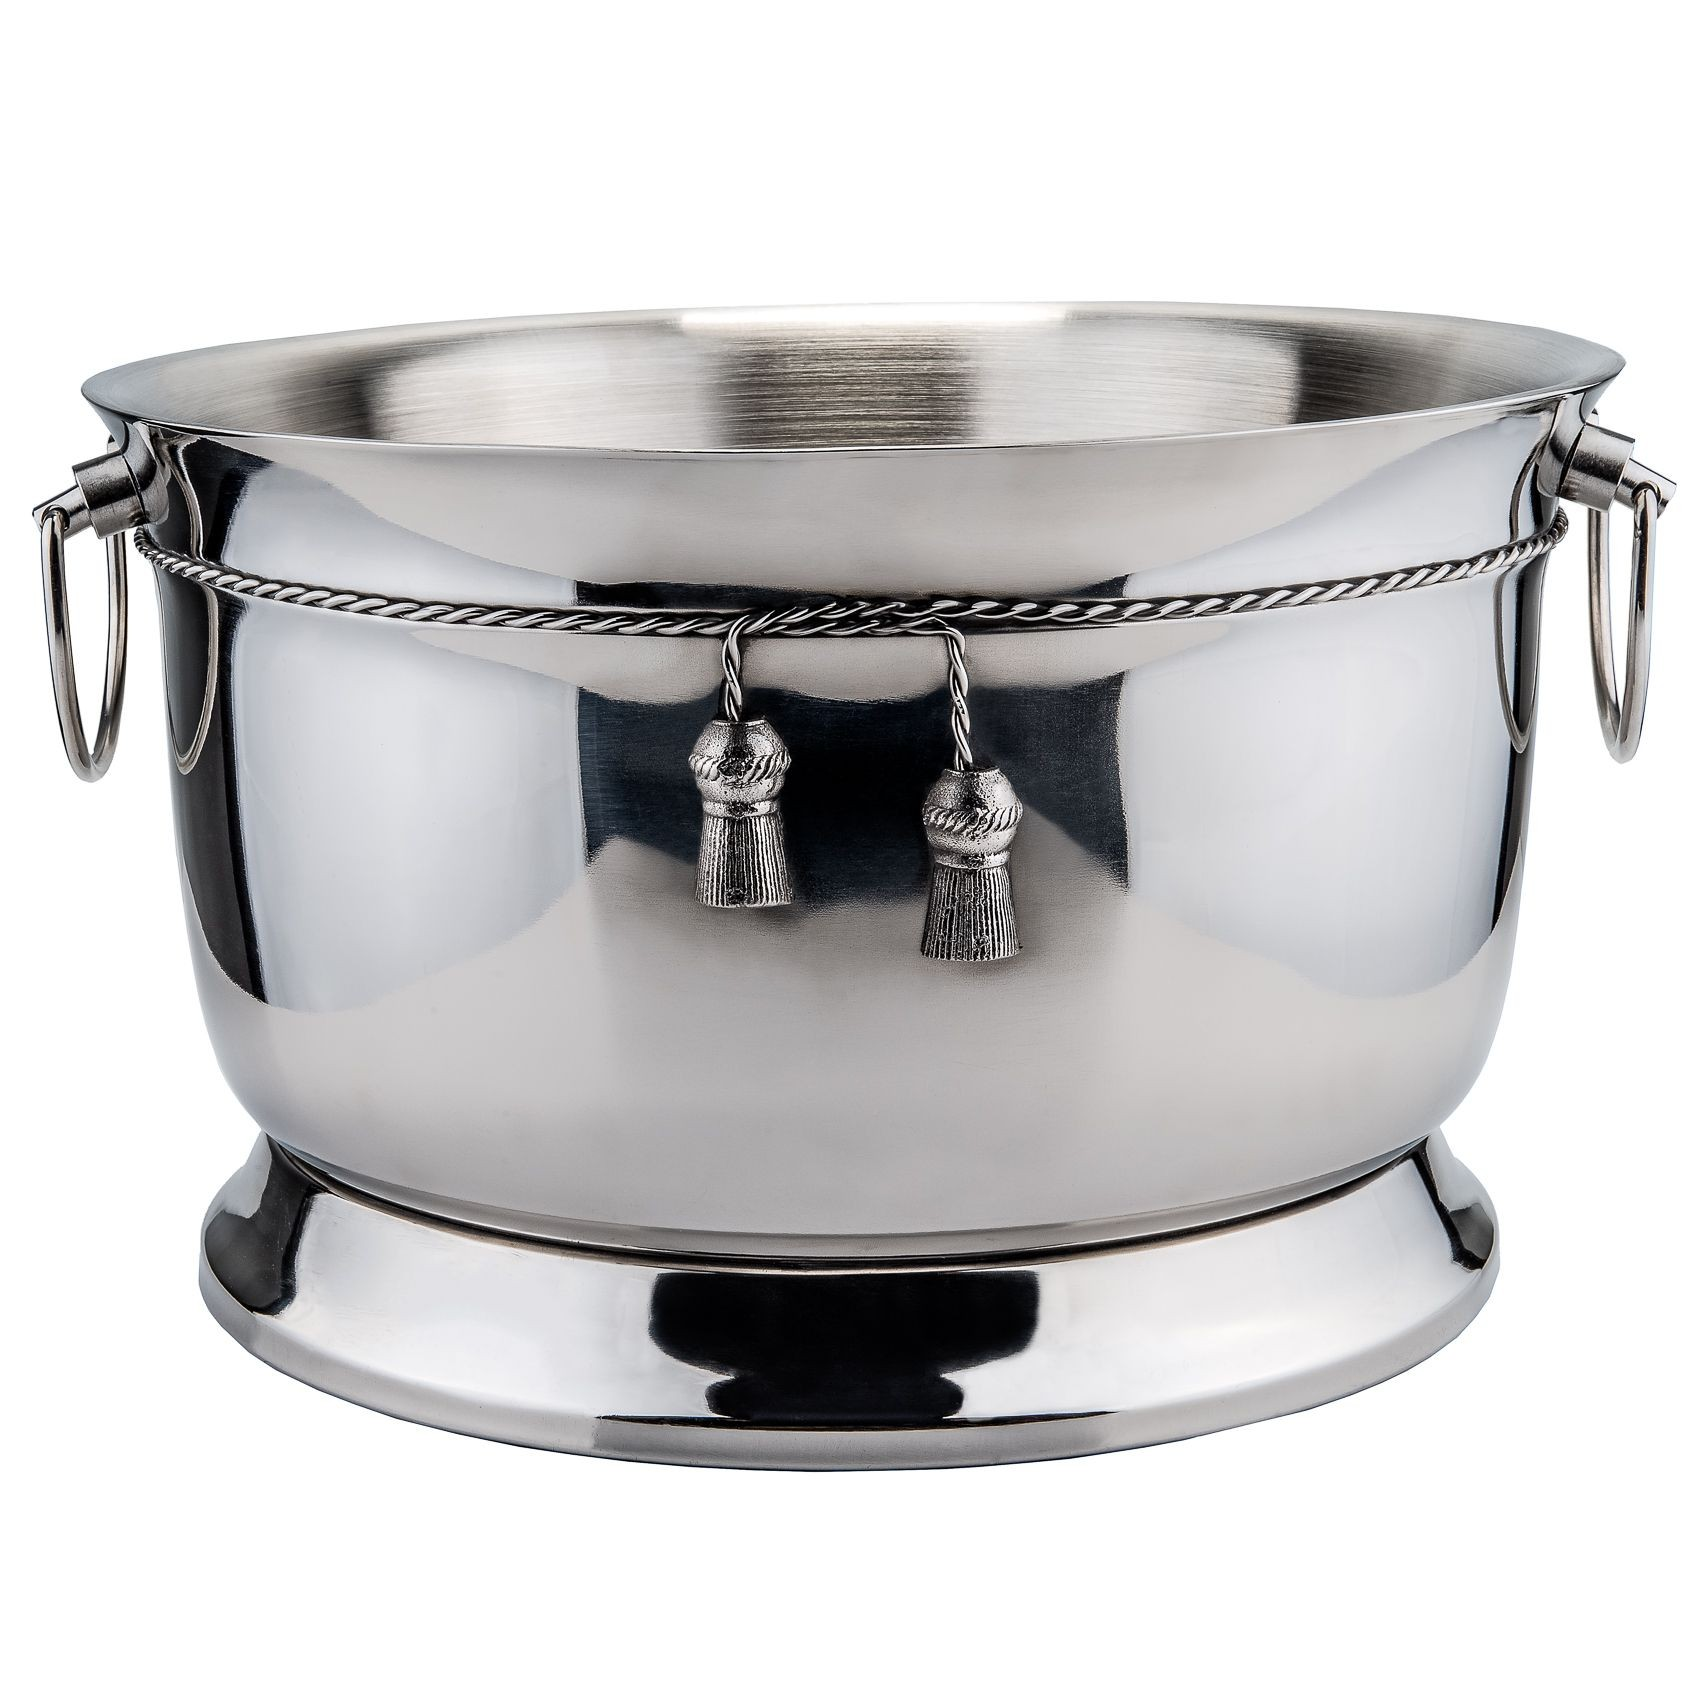 Old Dutch International 1109 Stainless Steel Double-Walled Party Tub with Tie Knot, 3 3/4 Gallon